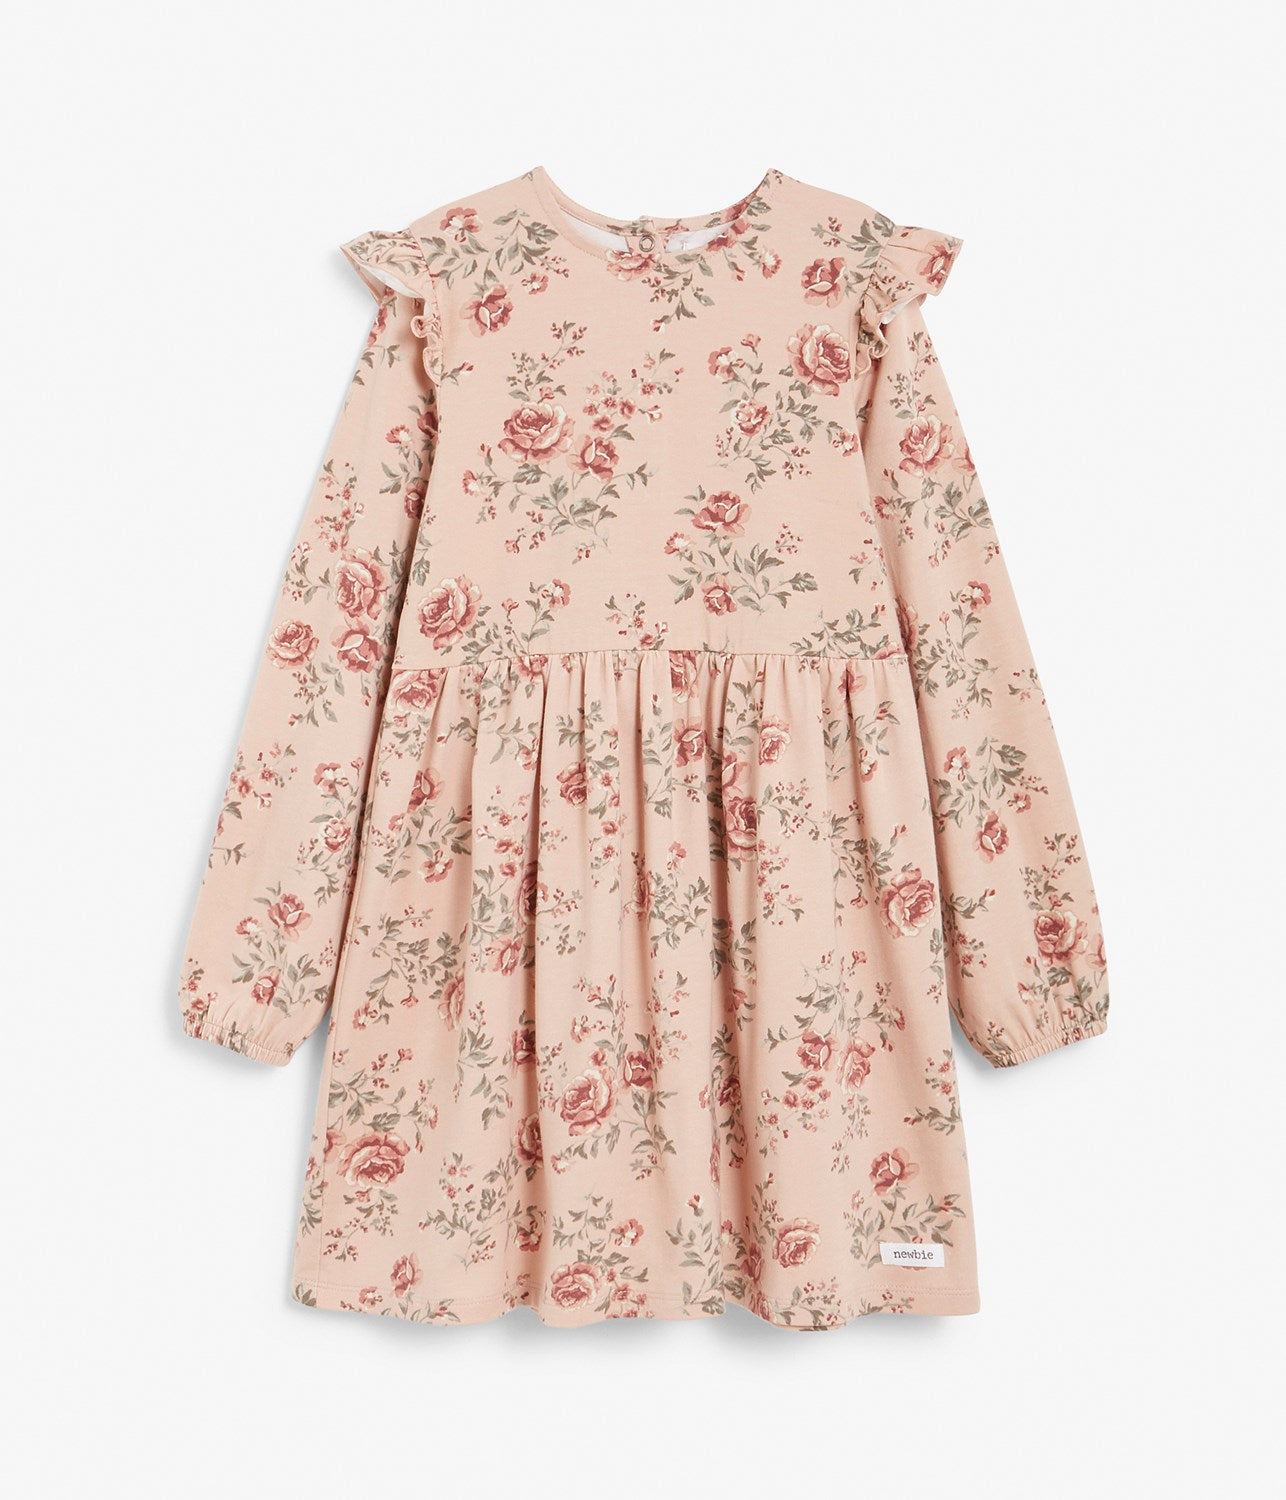 Kids pink floral print dress with shoulder ruffles